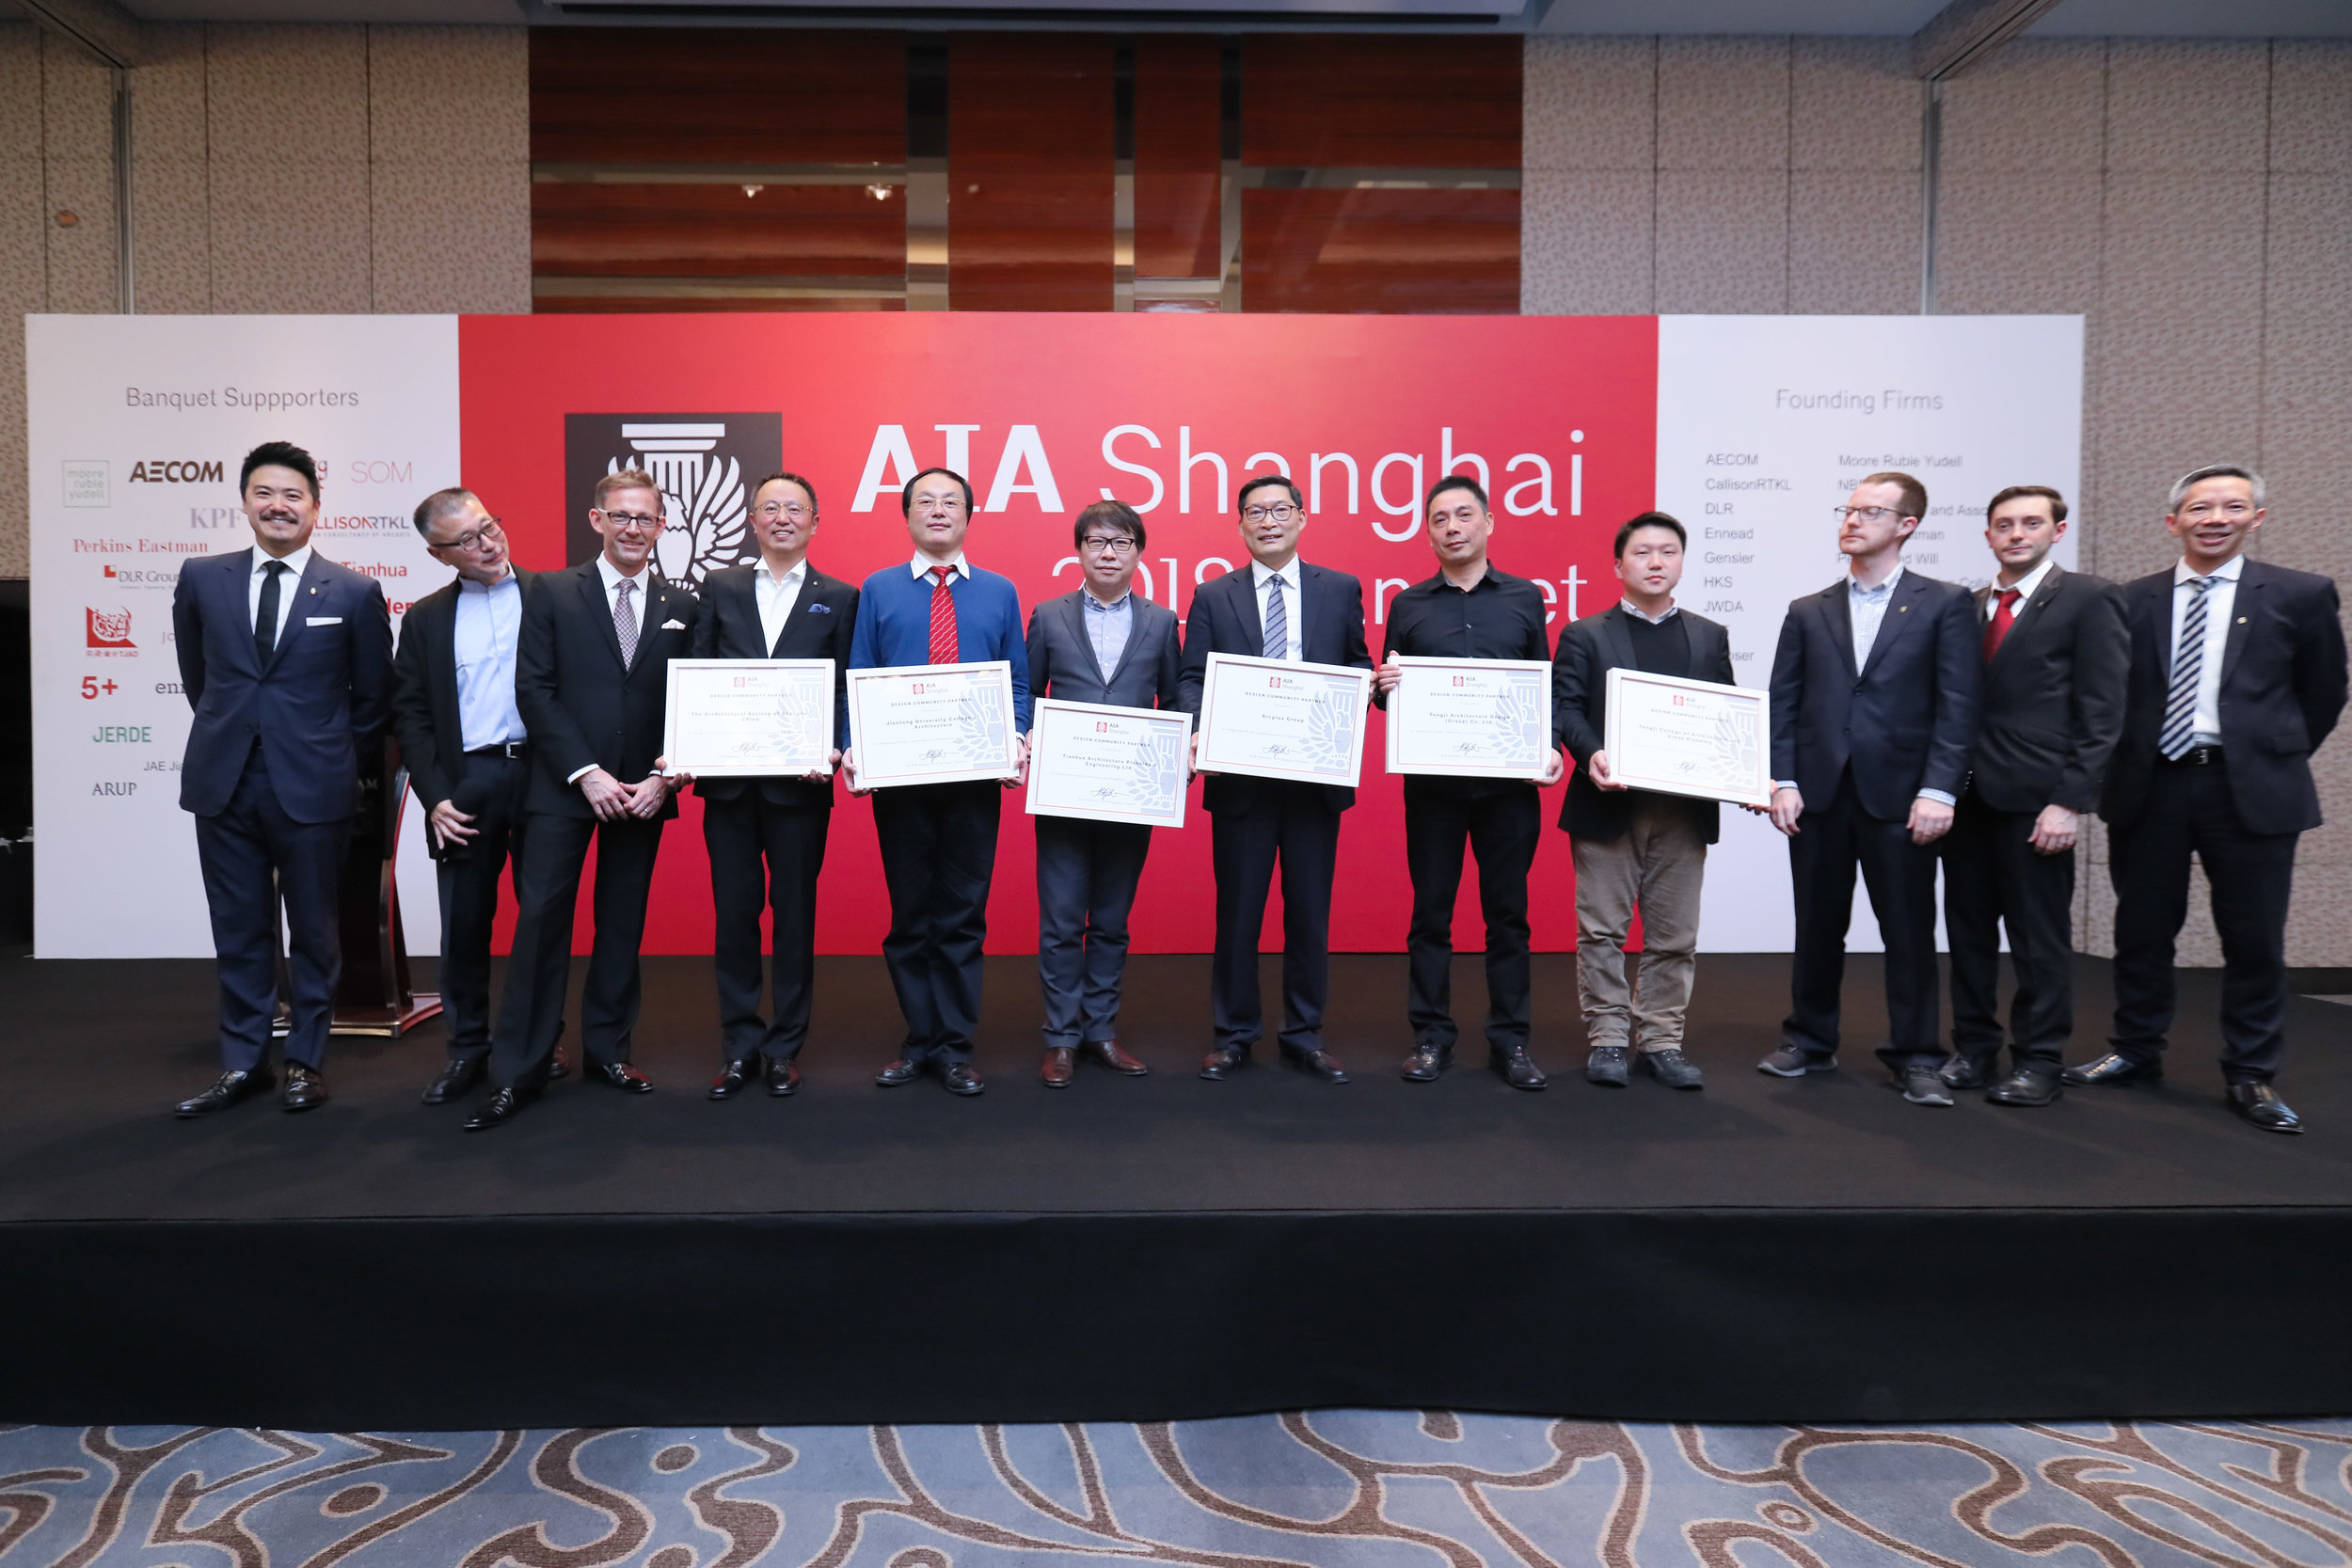 We took a chance to recognize our community partners, which included Arcplus, Tonji University College of Architecture and Design, the Architectural Society of Shanghai, China, and Tianhua.